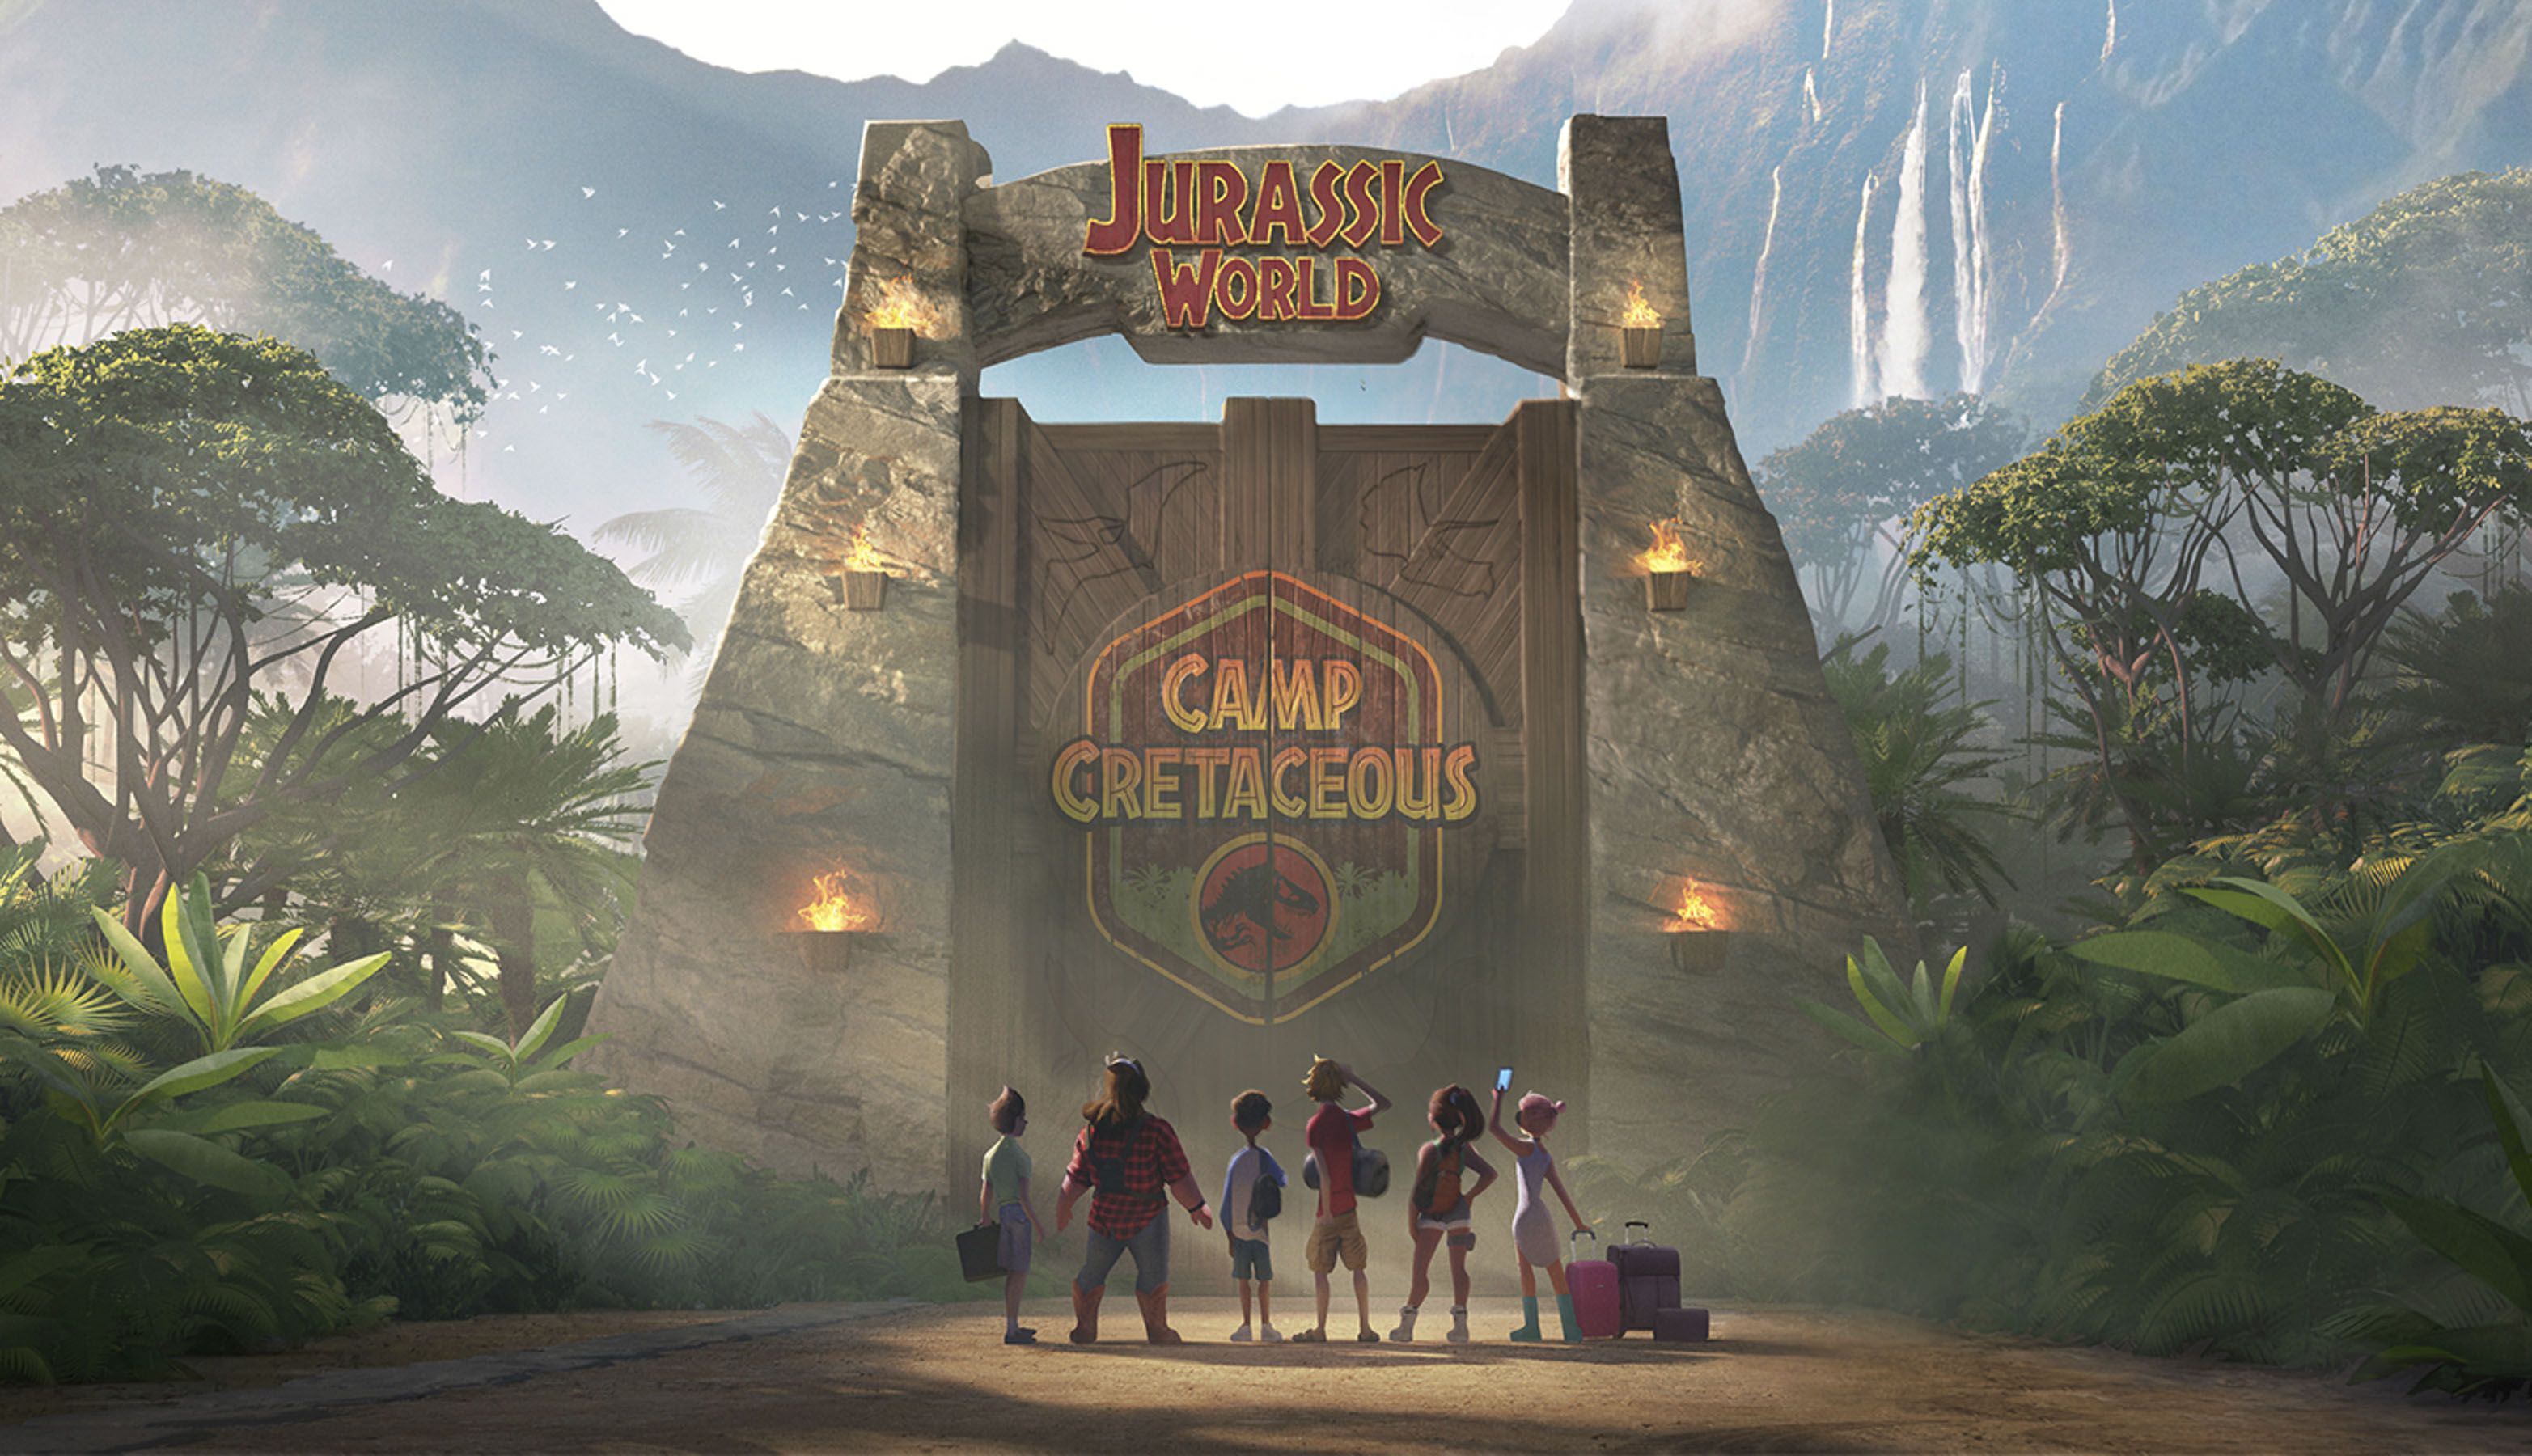 Camp Cretaceous is good fun and meant for those who still have a bit of kid at heart. It's an enjoyable mix of popcorn movie and chocolate-cereal cartoon.